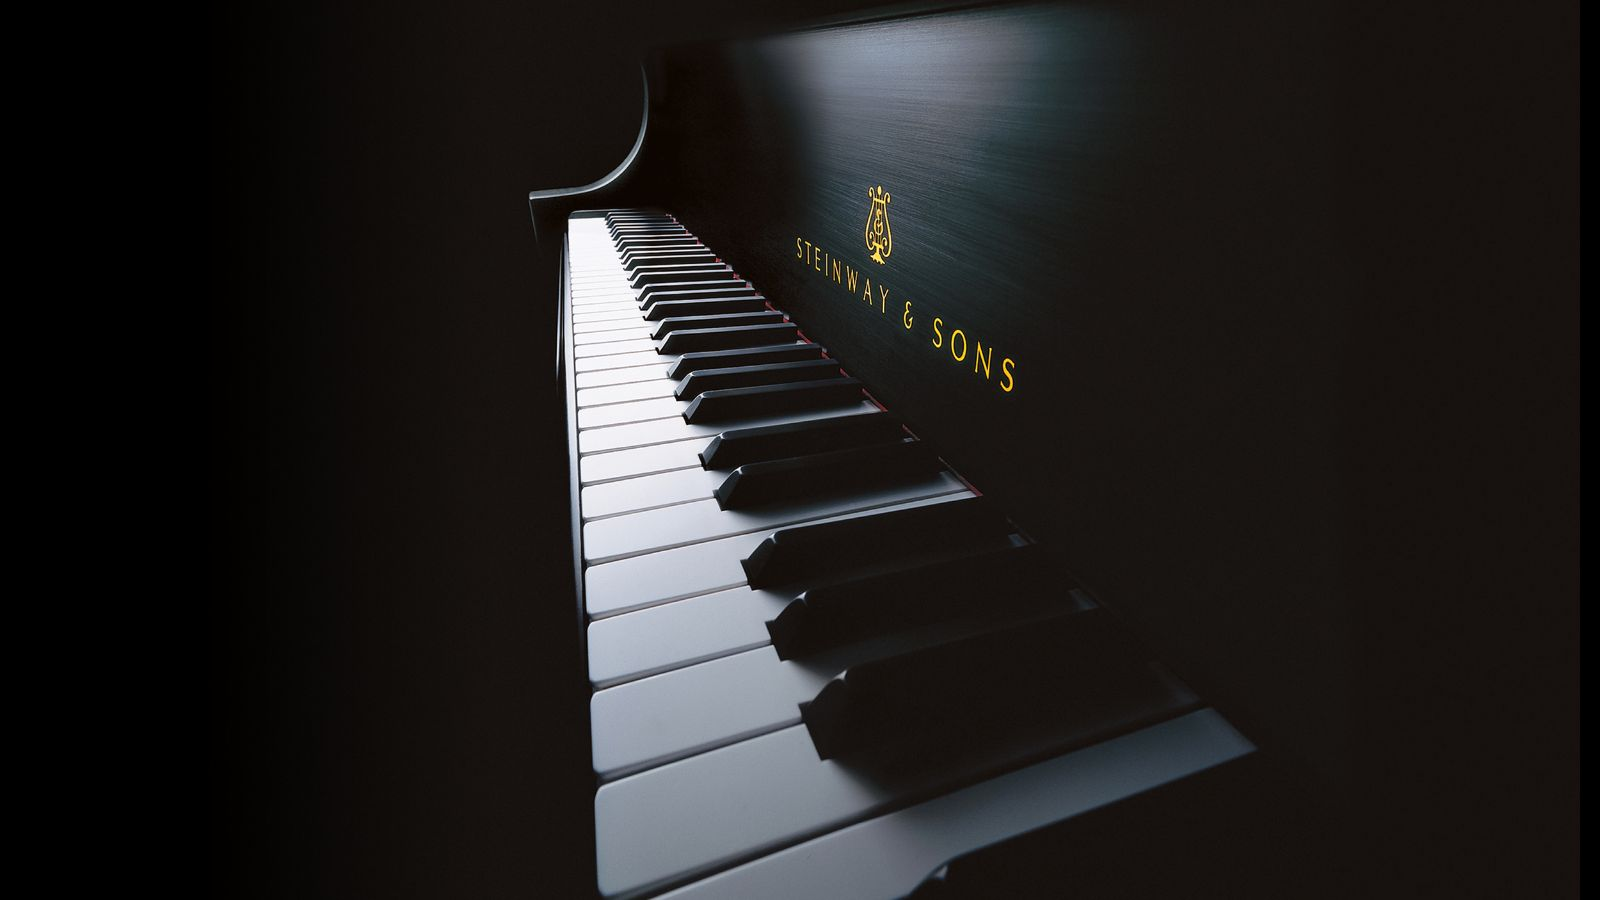 2020 Steinway Junior Piano Competition   Steinway Sons 1600x900